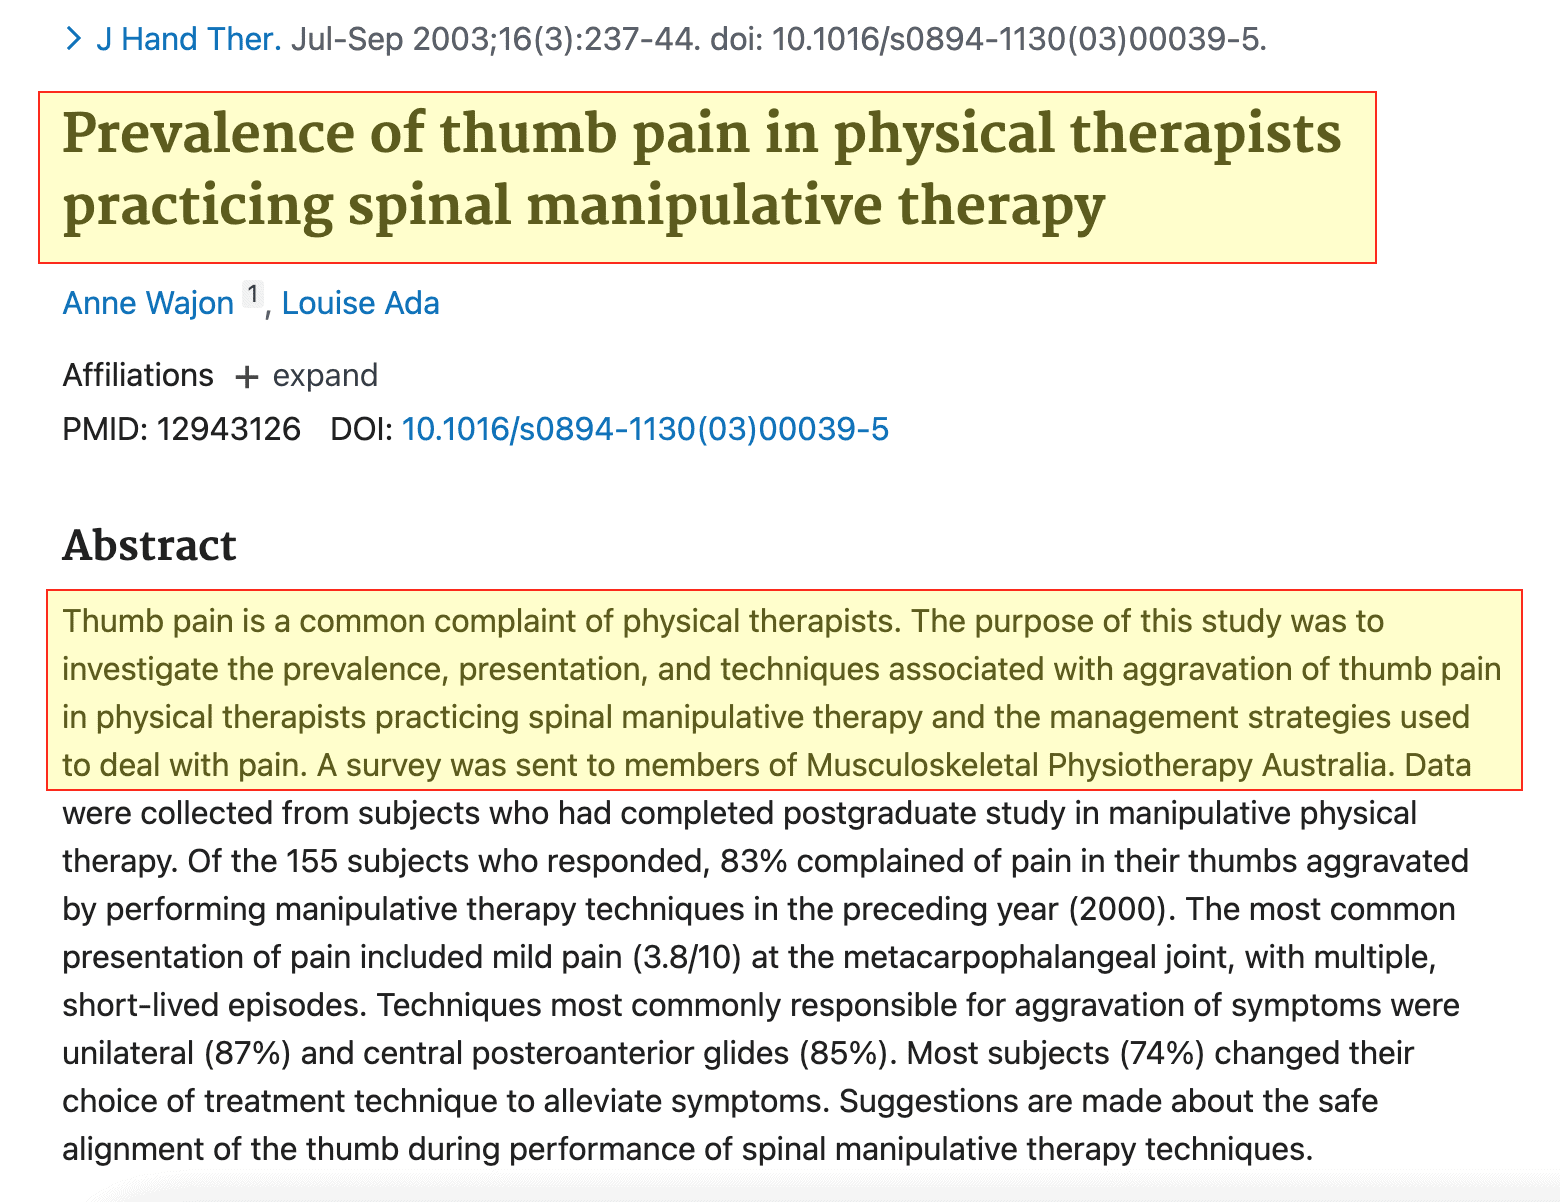 Studio Problemi mano Fisioterapisti Prevalence of thumb pain in physical therapists practicing spinal manipulative therapy - Journal Of Hand Therapy